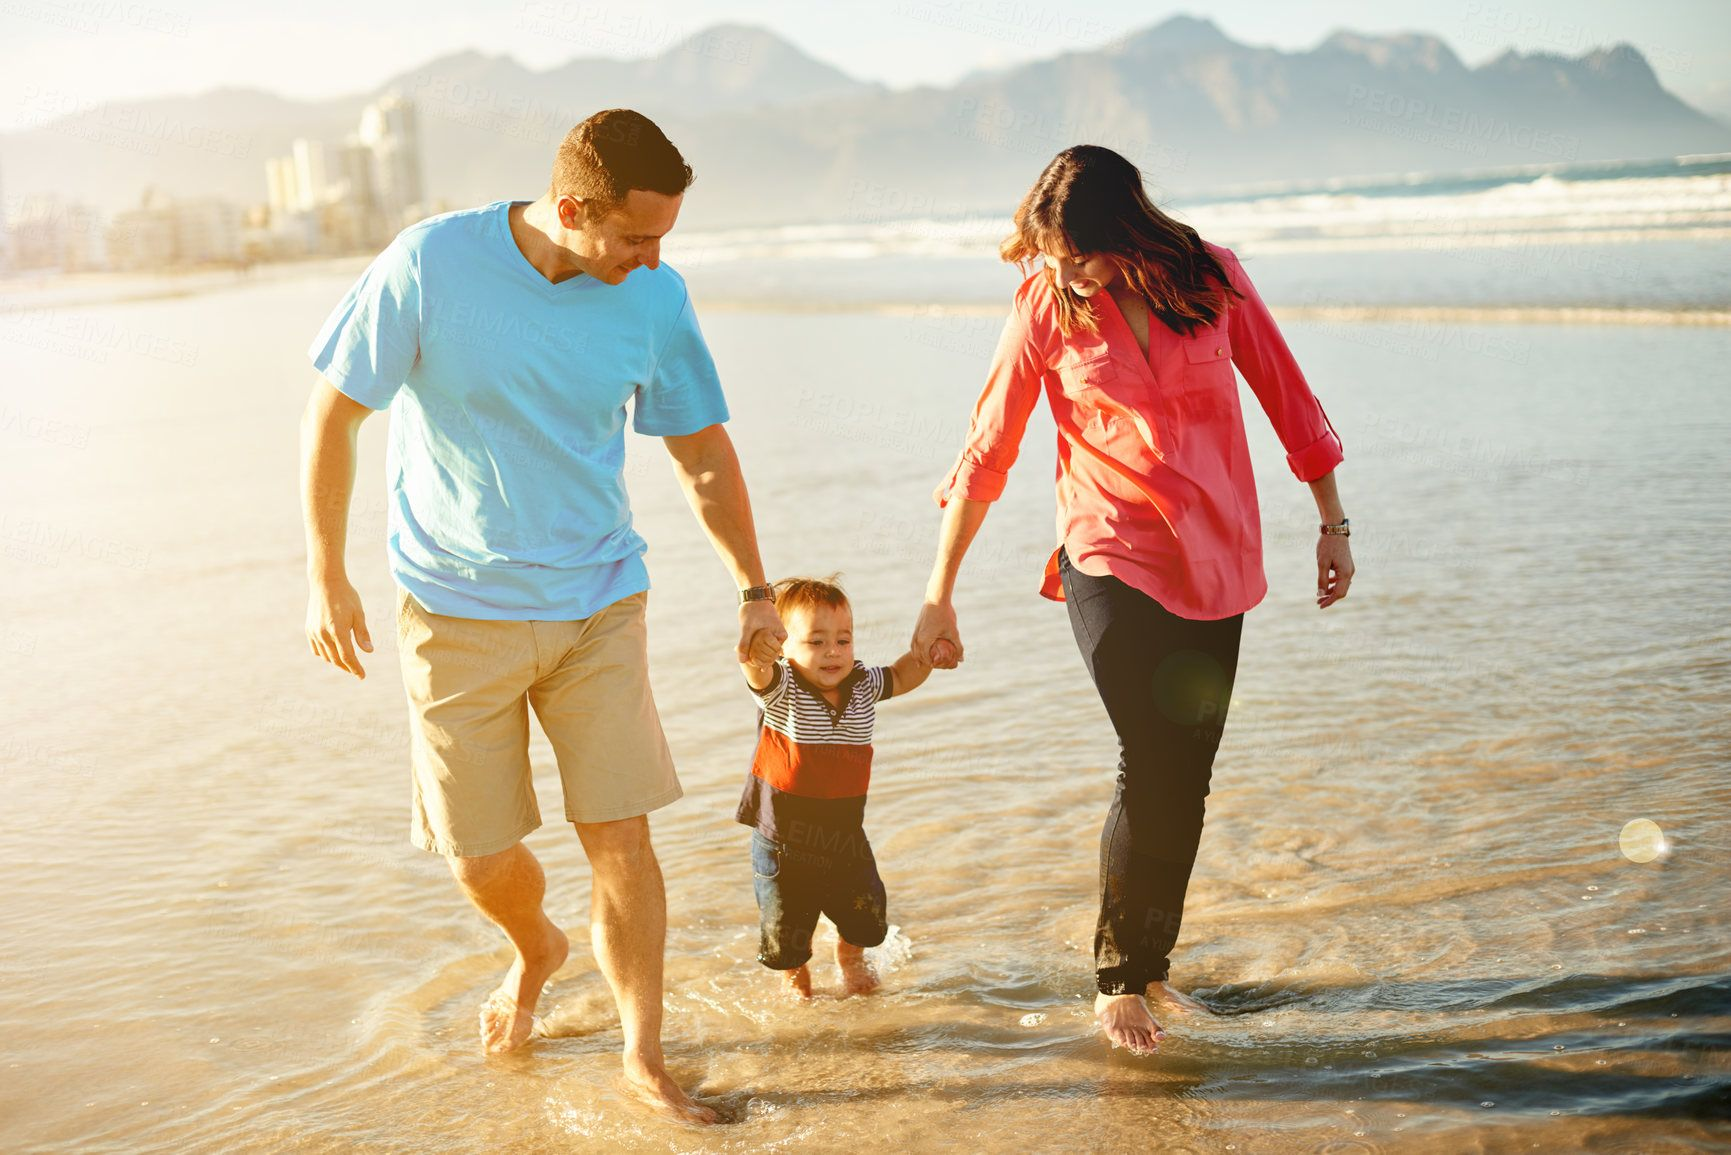 Shot of a family of three enjoying a day at the beach - stock photo #1358039